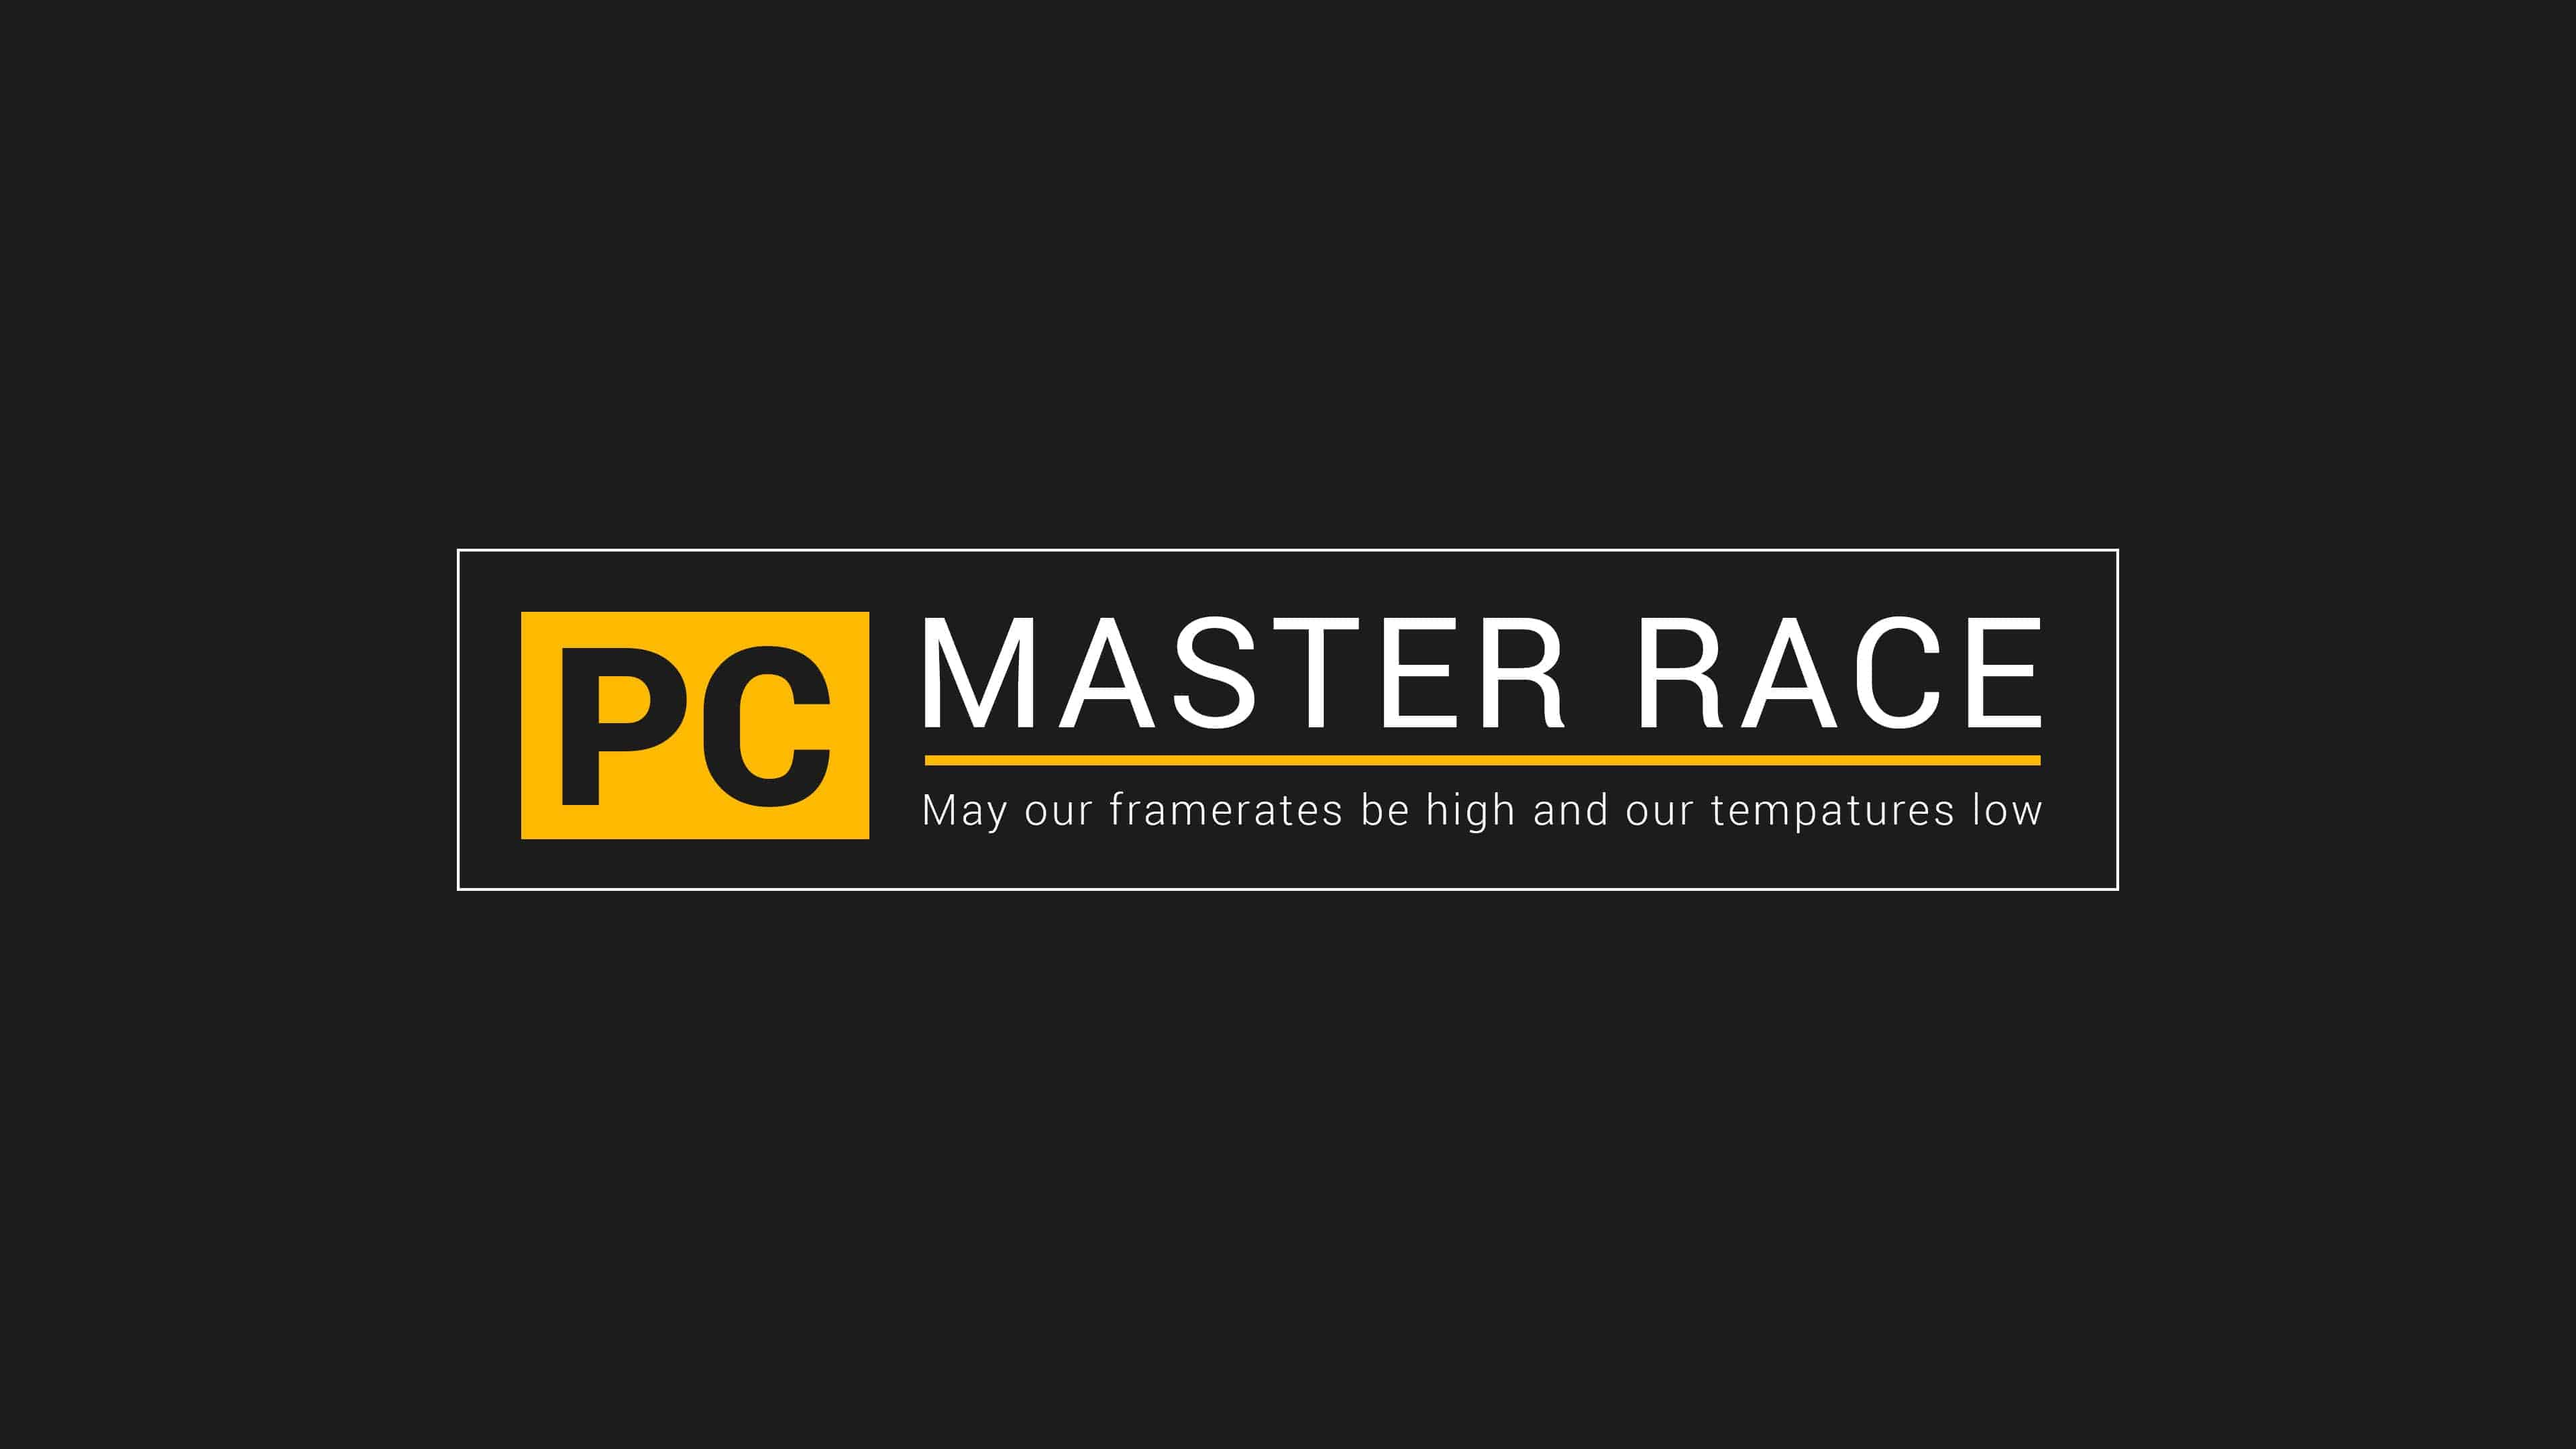 Pc Master Race Wallpapers: PC Master Race Logo UHD 4K Wallpaper